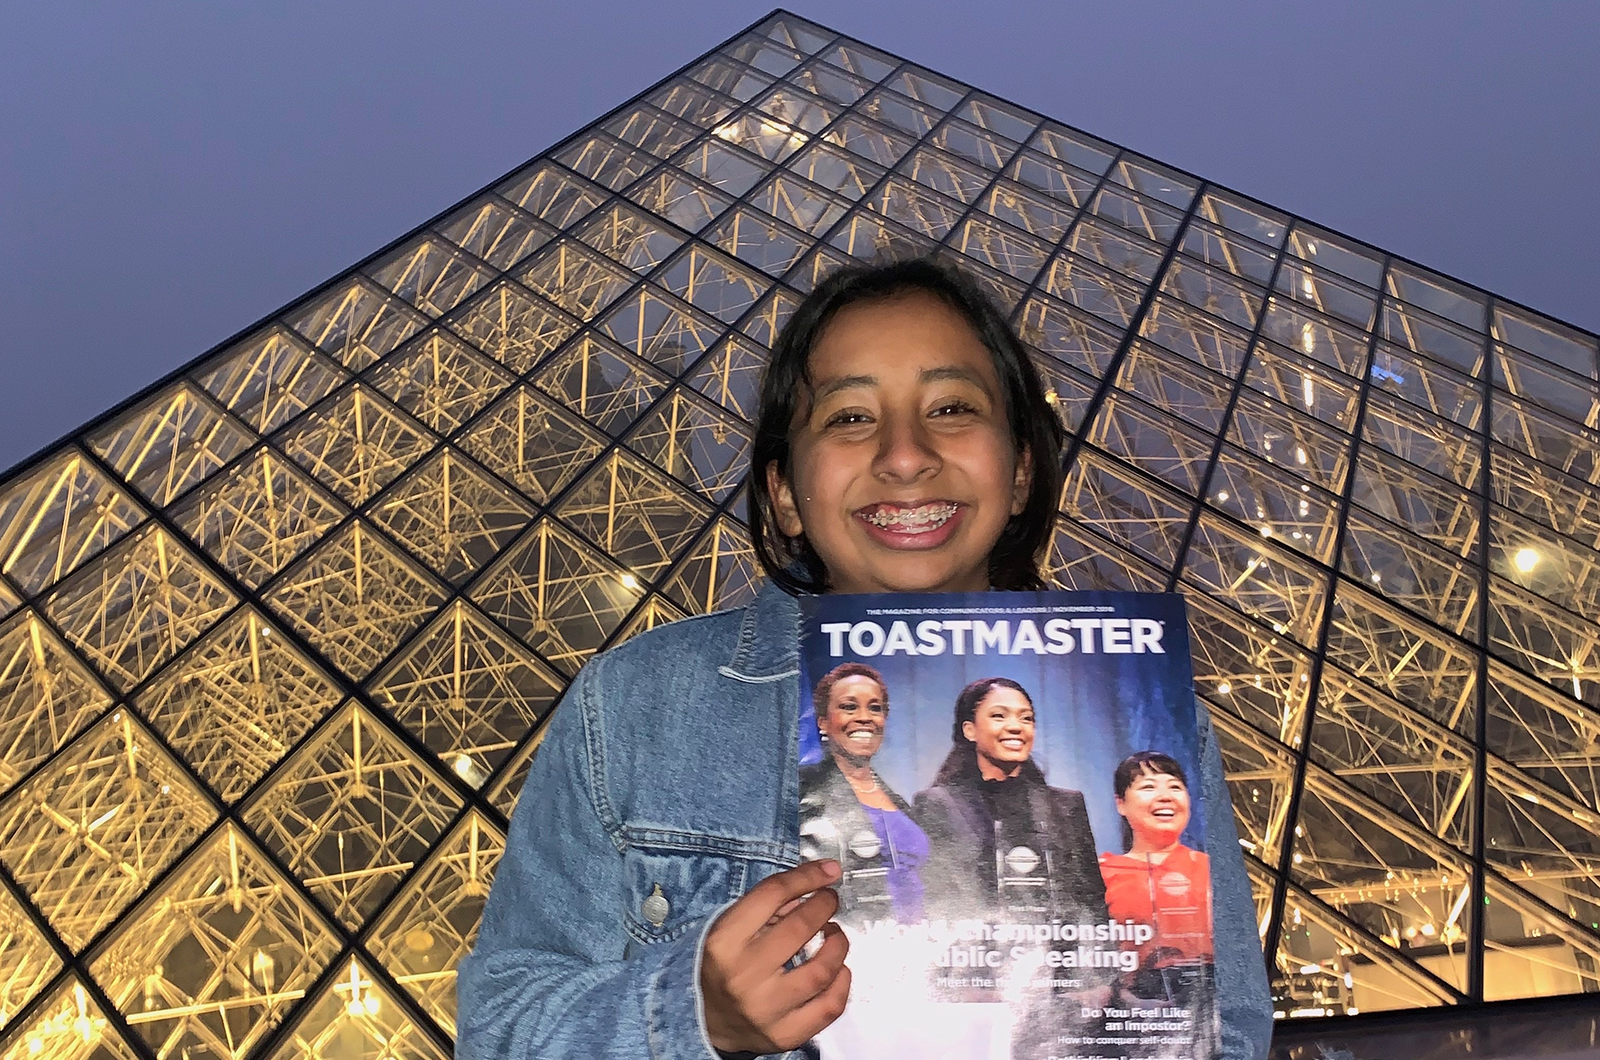 Melissa Rodriguez of Texcoco, Mexico, explores the Louvre Museum in Paris, France.